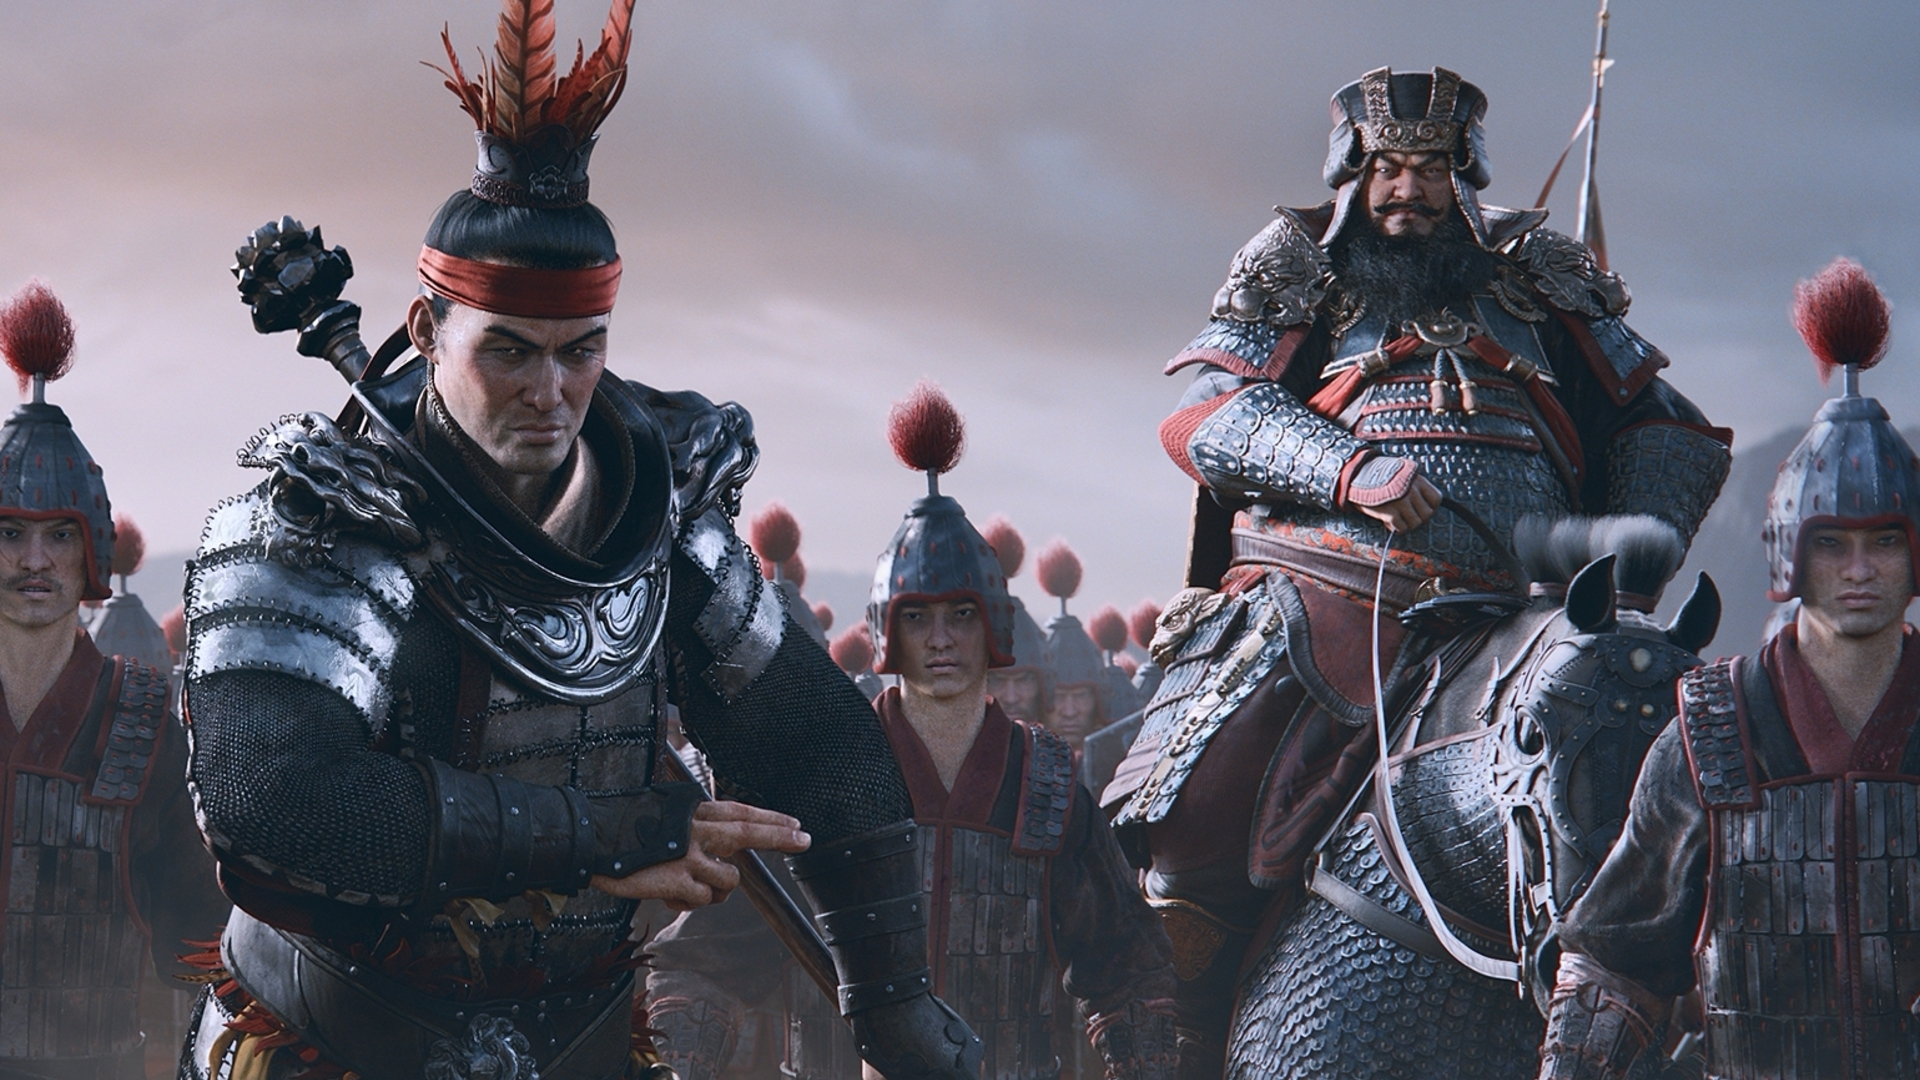 If  Dynasty Warriors  had any influence on the development of this game, then my man Lu Bu is NOT gonna be somebody you wanna mess with.